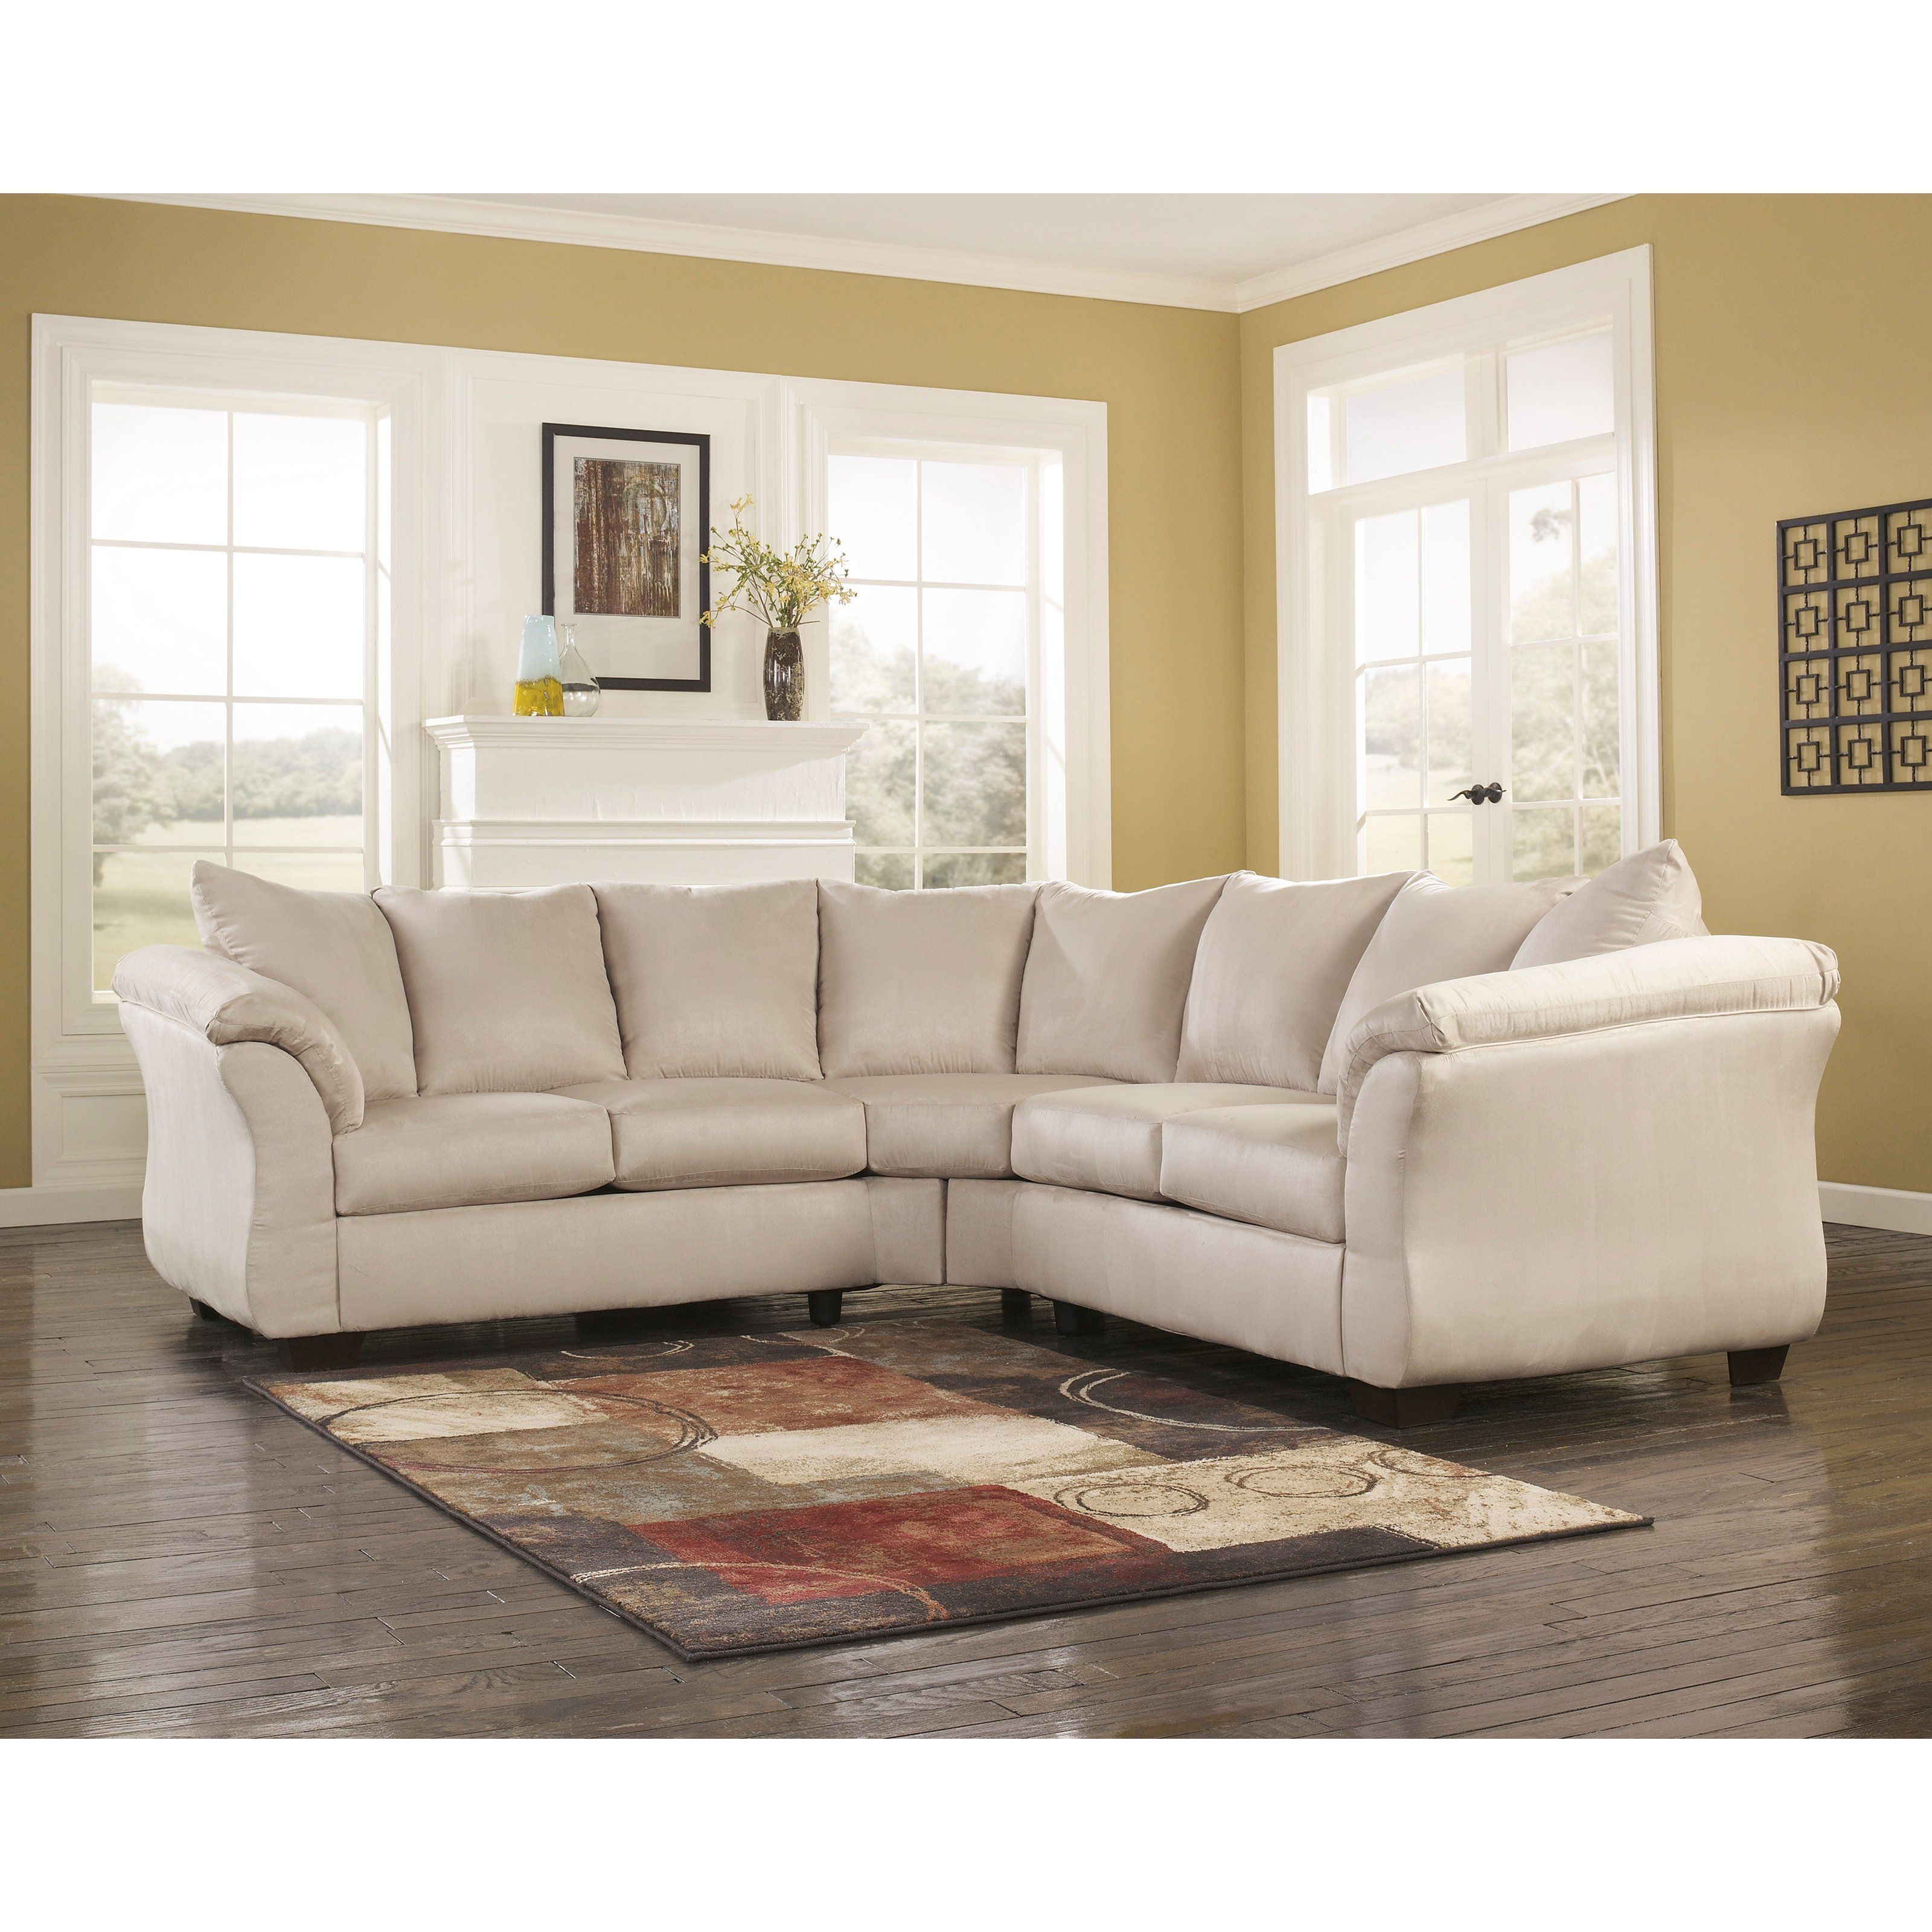 Signature Design By Ashley Darcy Fabric Sectional Ensure Plenty Of Lounging Ashley Furniture Sofas Contemporary Sectional Sofa Fabric Sectional Sofas